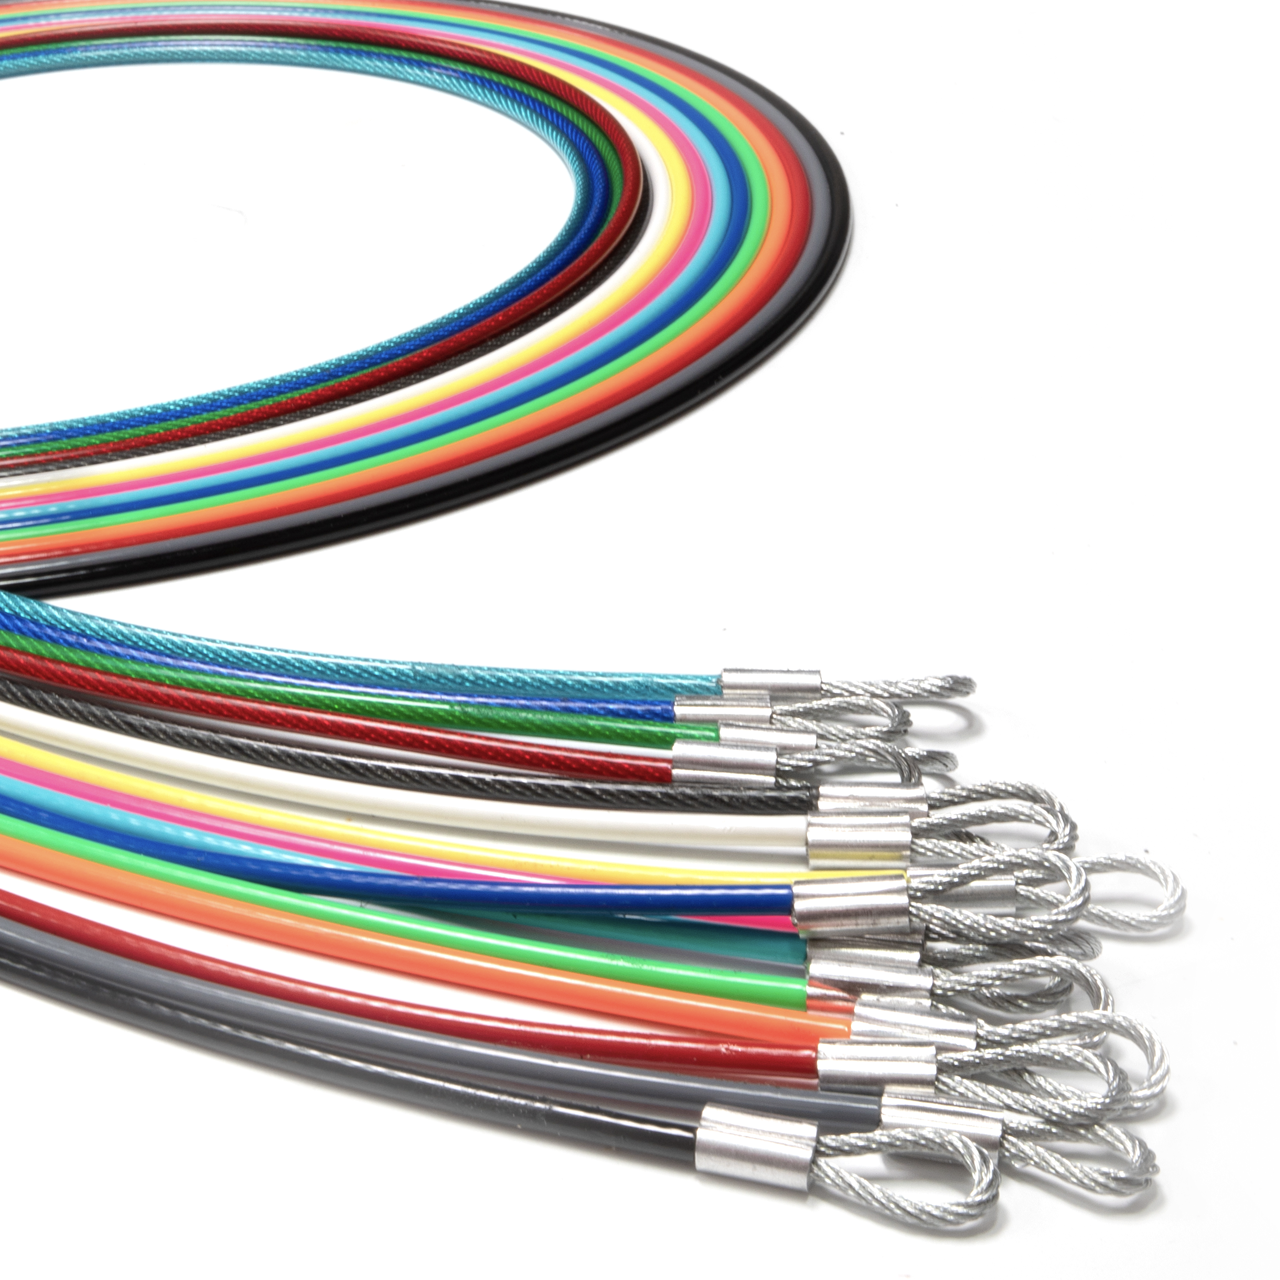 RX Cable, The Original Rx Jump Ropes, replacement cable, Speed rope